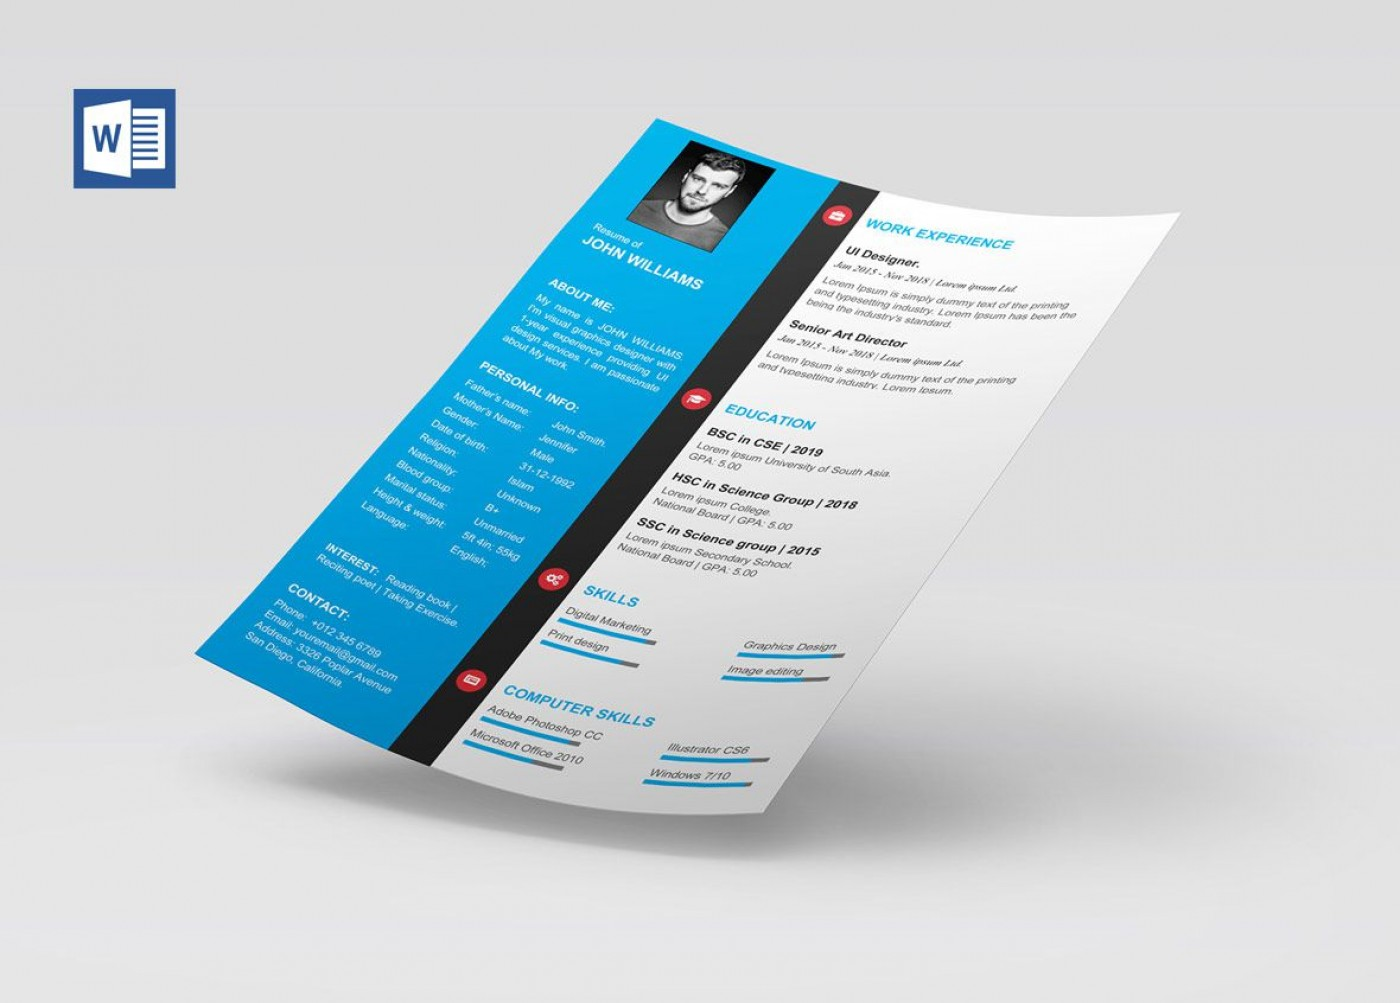 011 Formidable Word Template Free Download Image  M Design Best Cv Microsoft 20191400